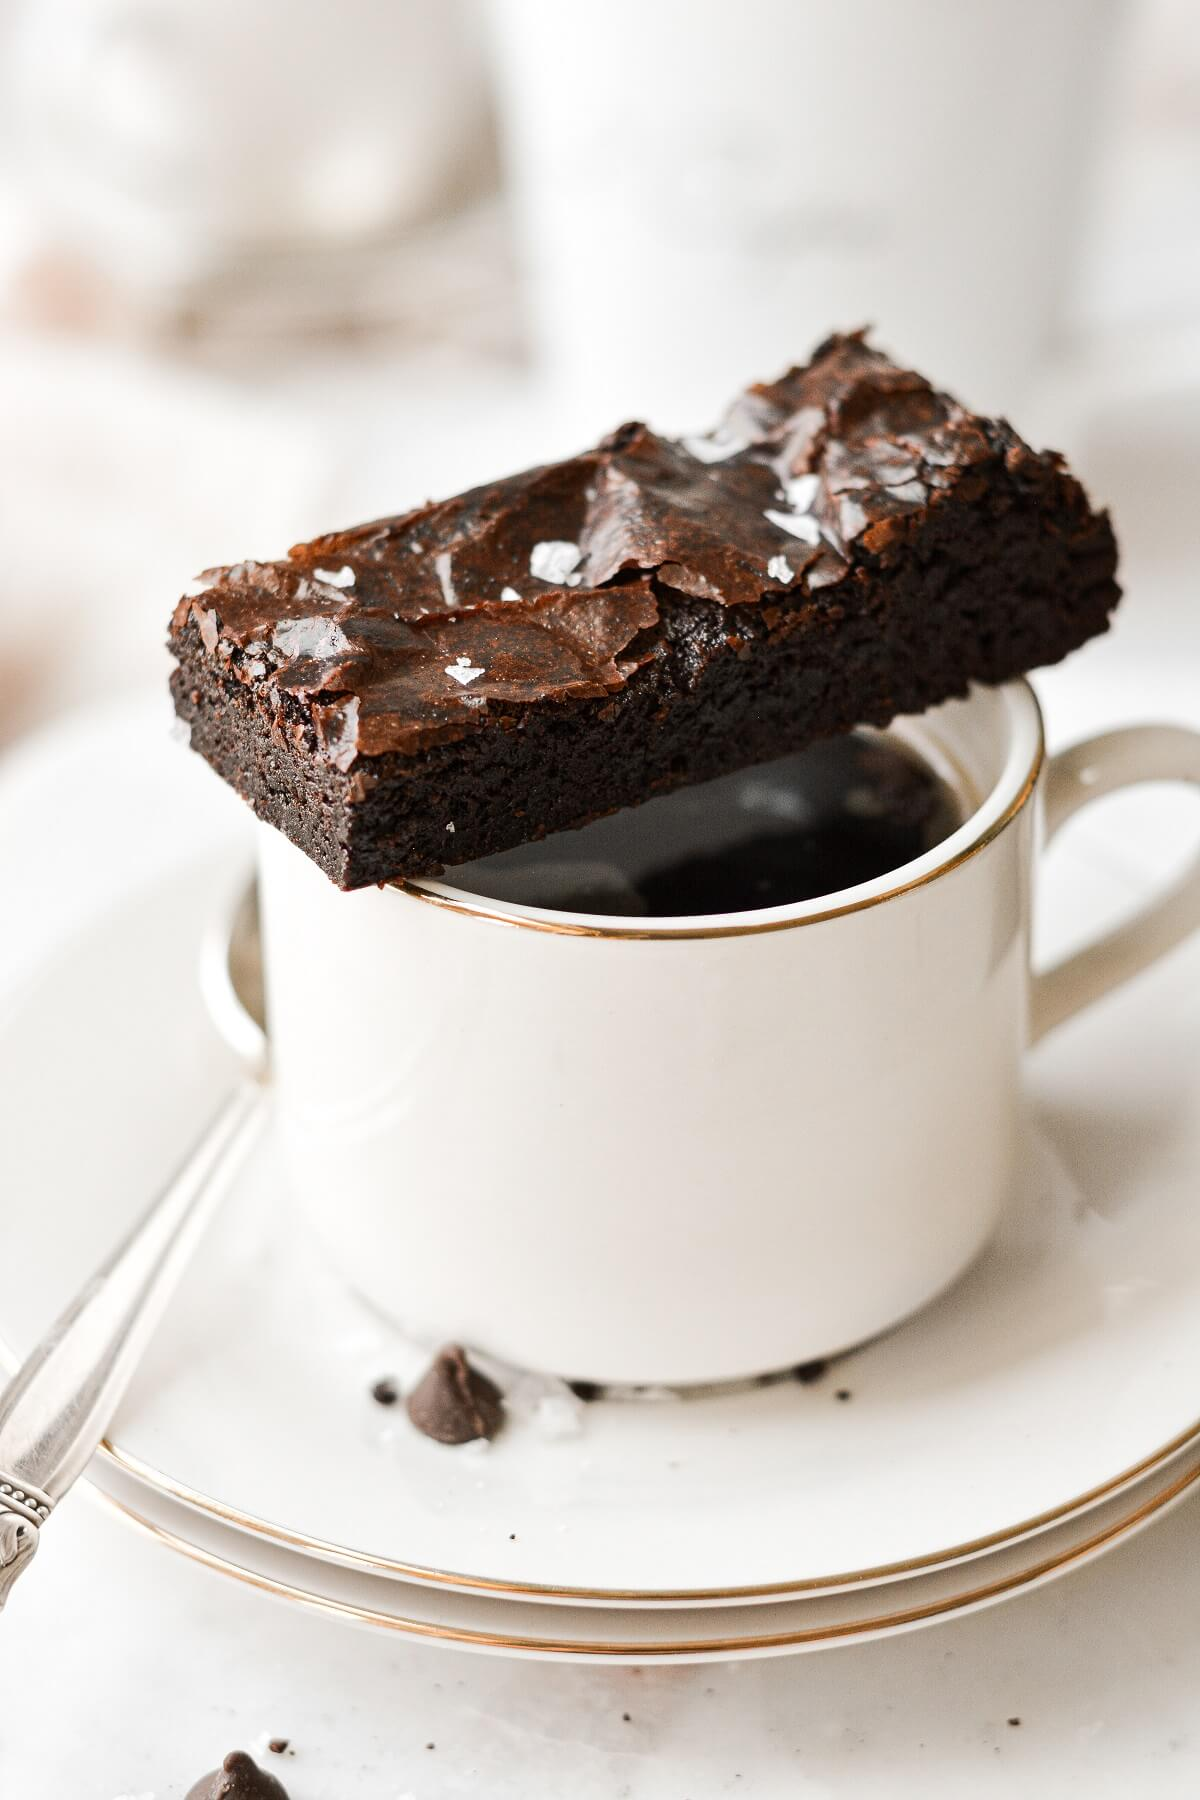 A fudge brownie sitting on top of a cup of coffee.